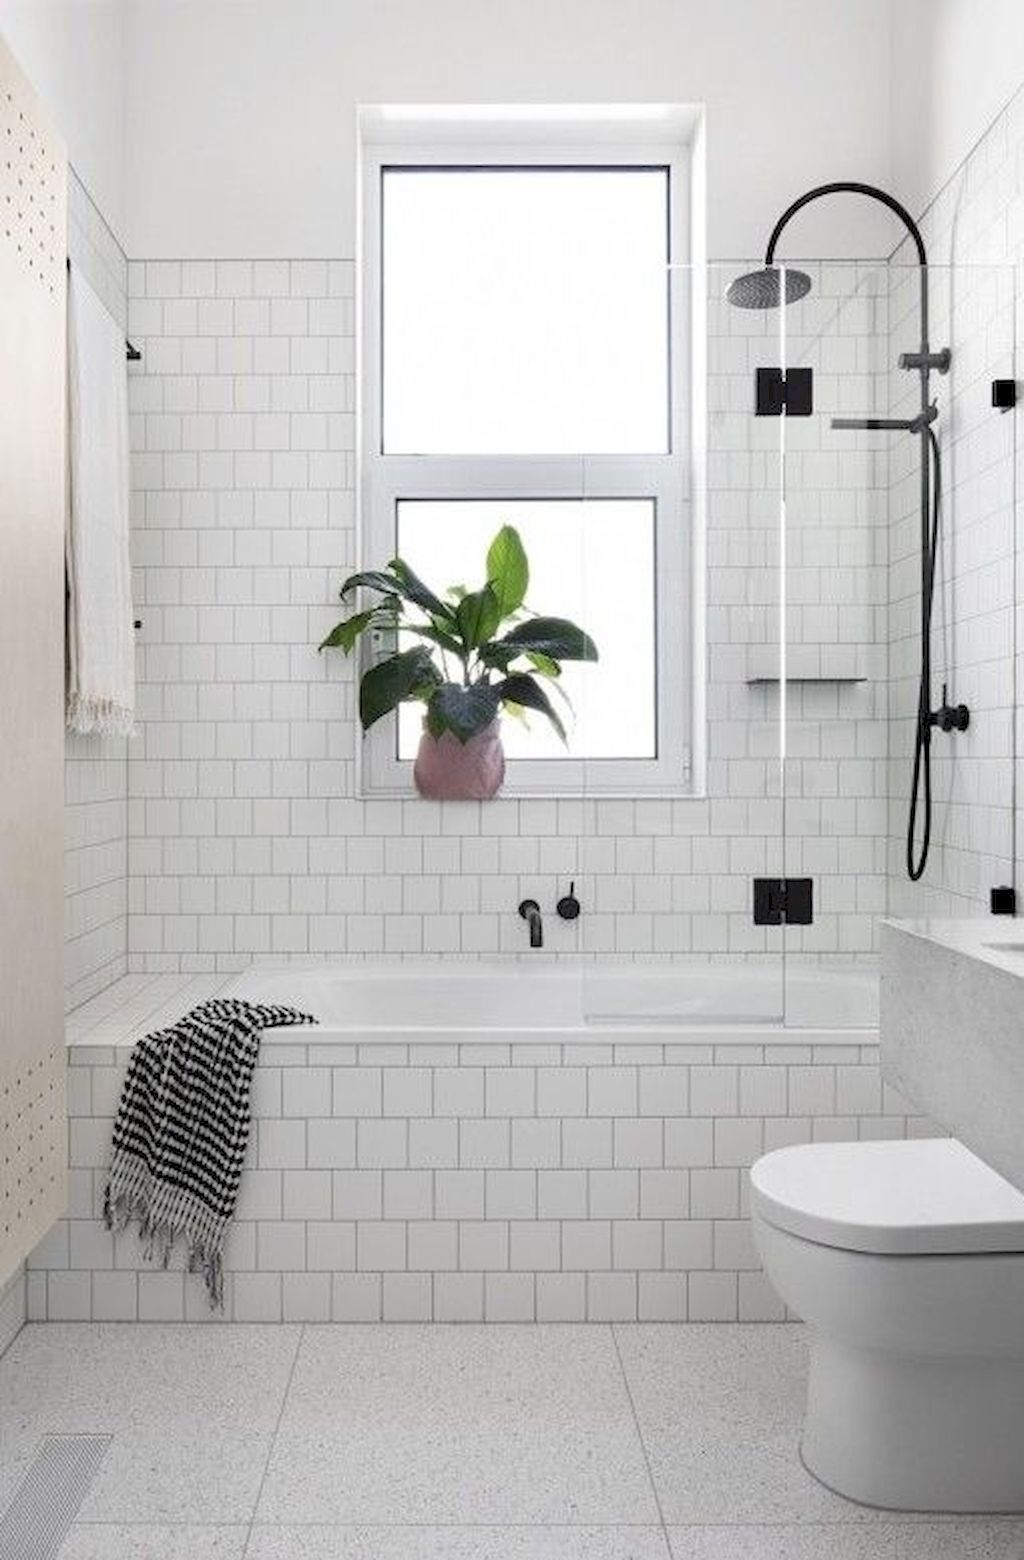 65 Fresh and Cool Small Bathroom Remodel Ideas on A Budget   Small ...